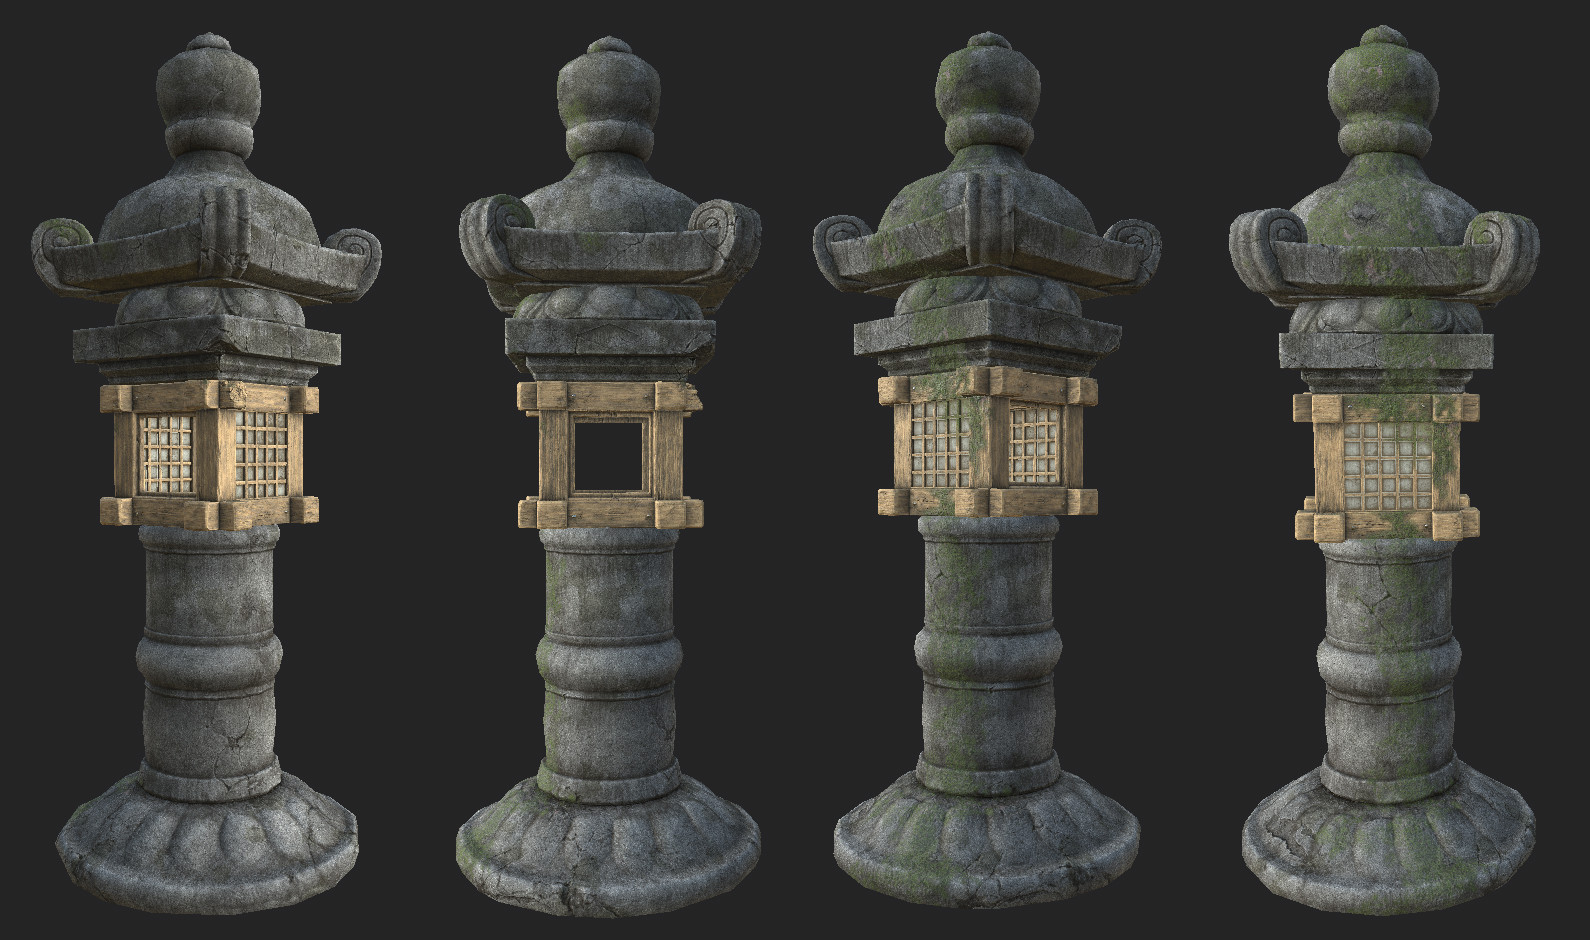 Substance Painter texturing from low resolution mesh and baked maps